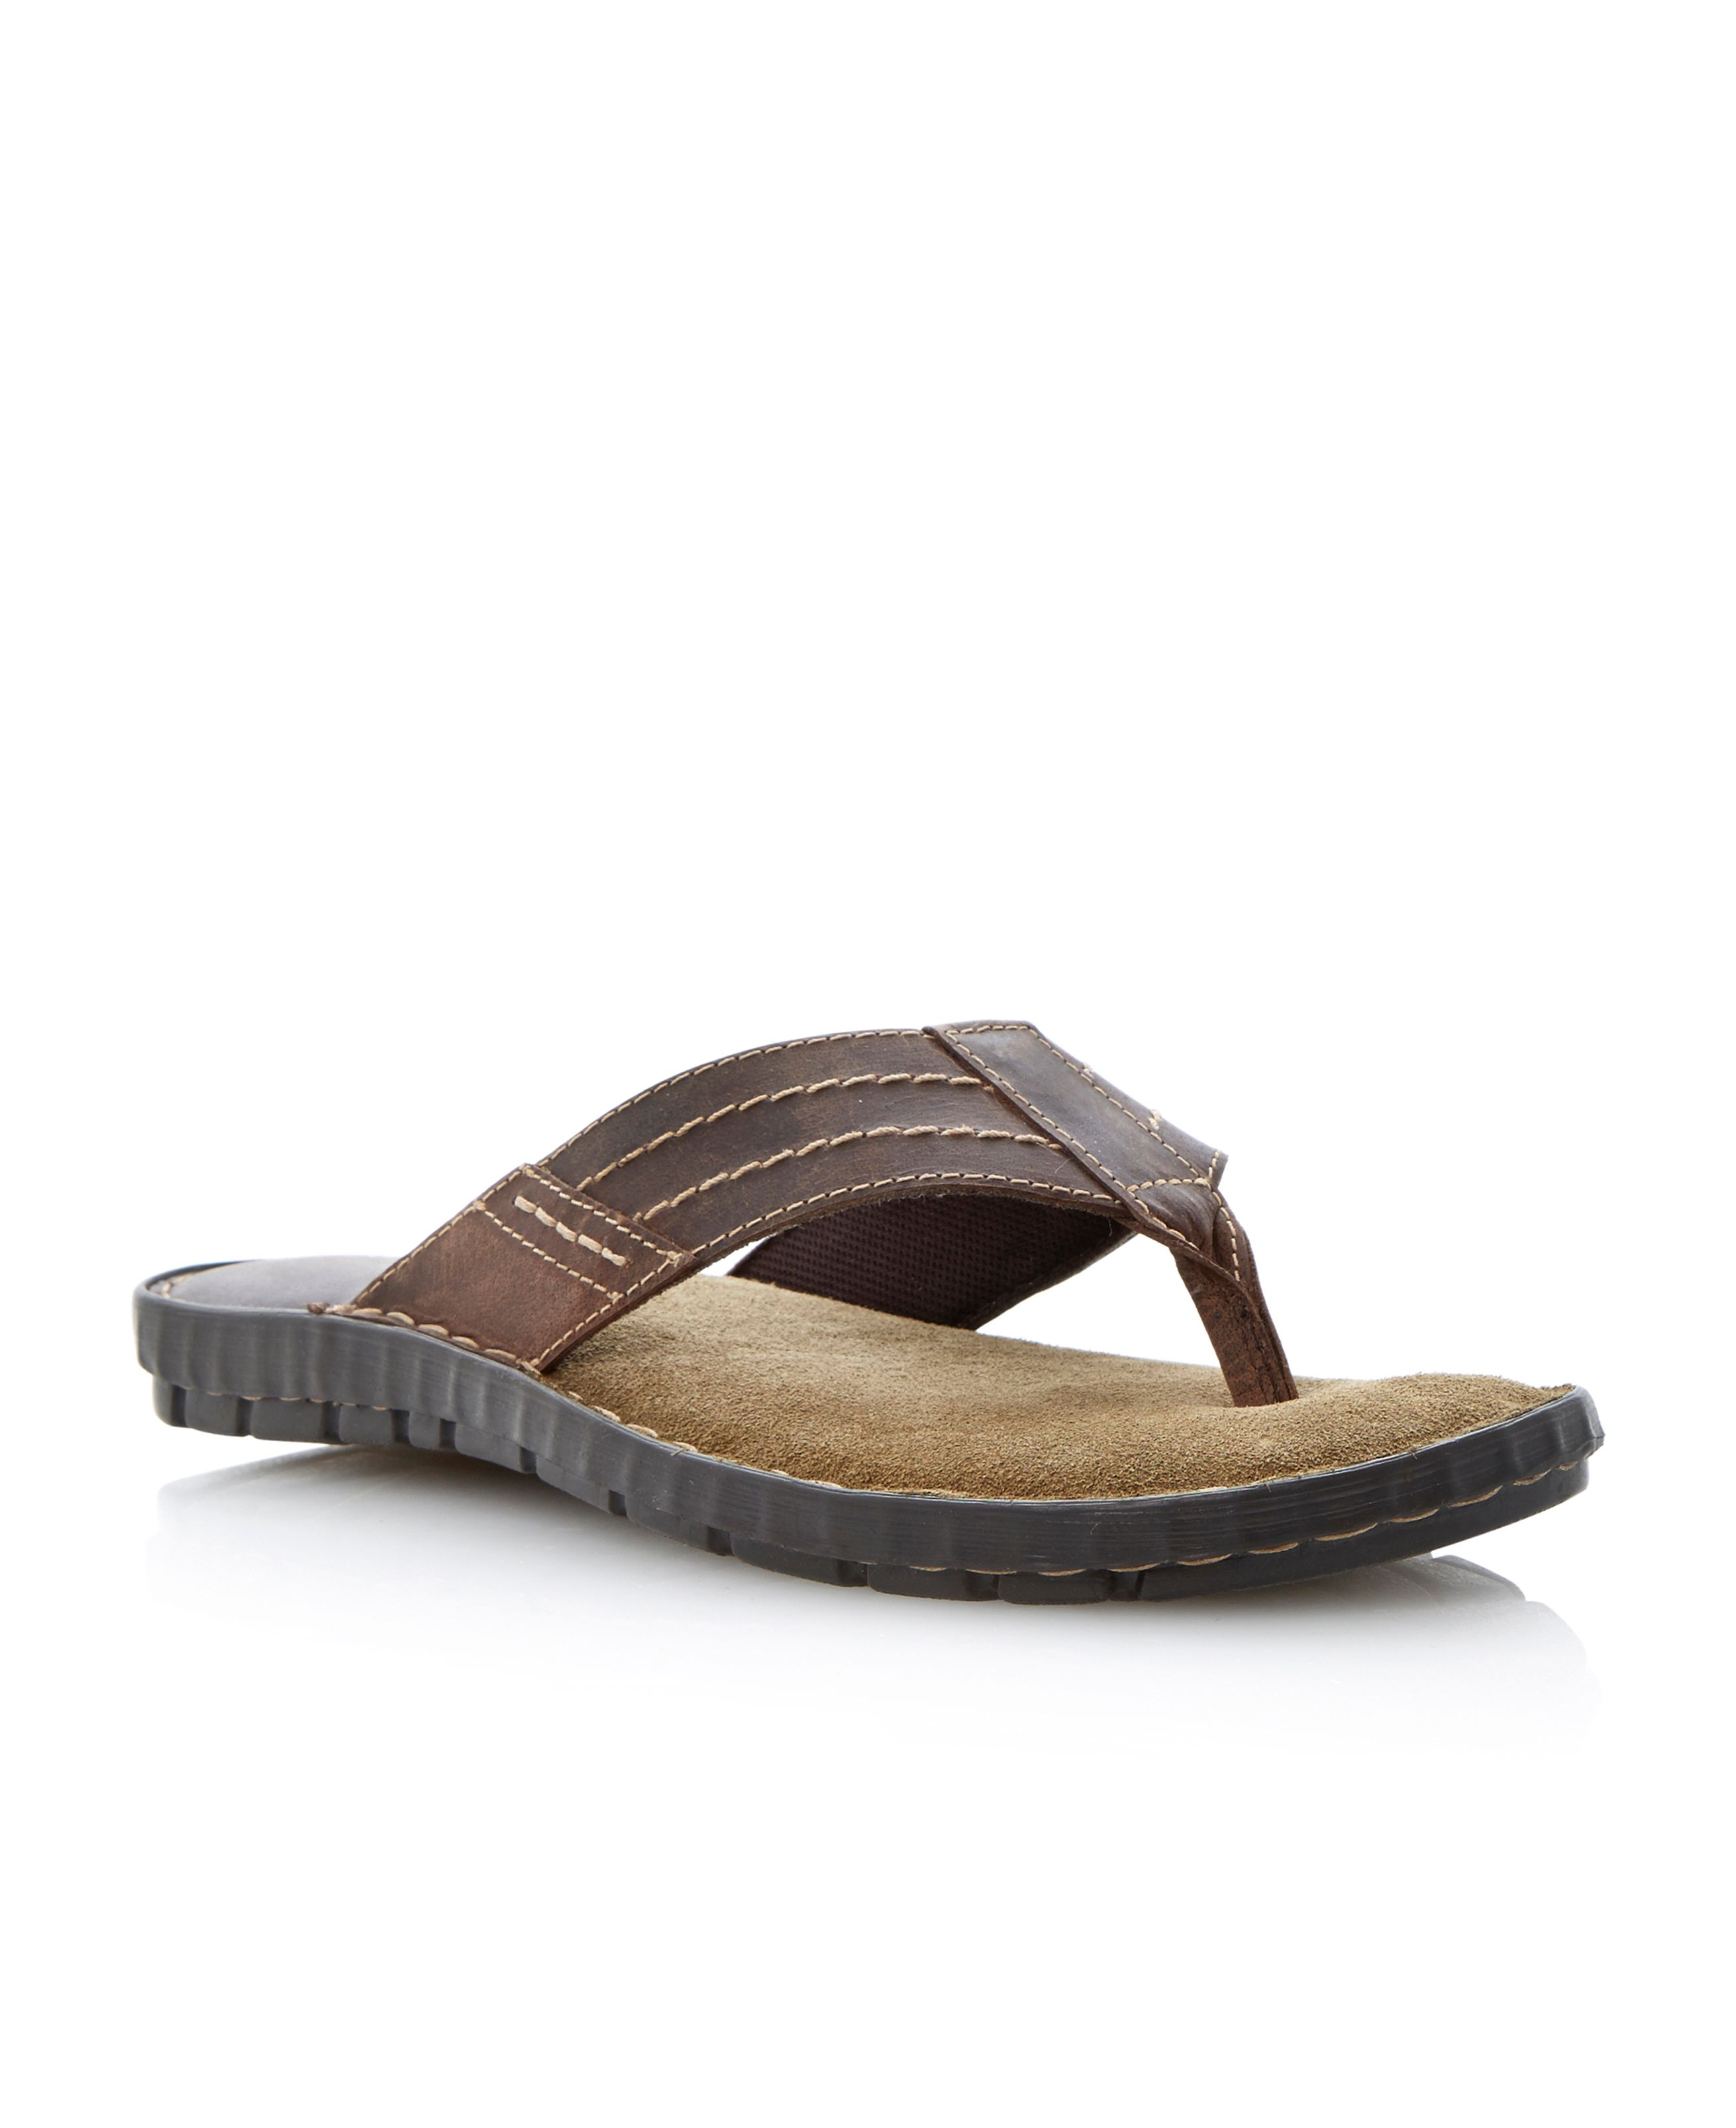 Indonesia toepost comfort sandals